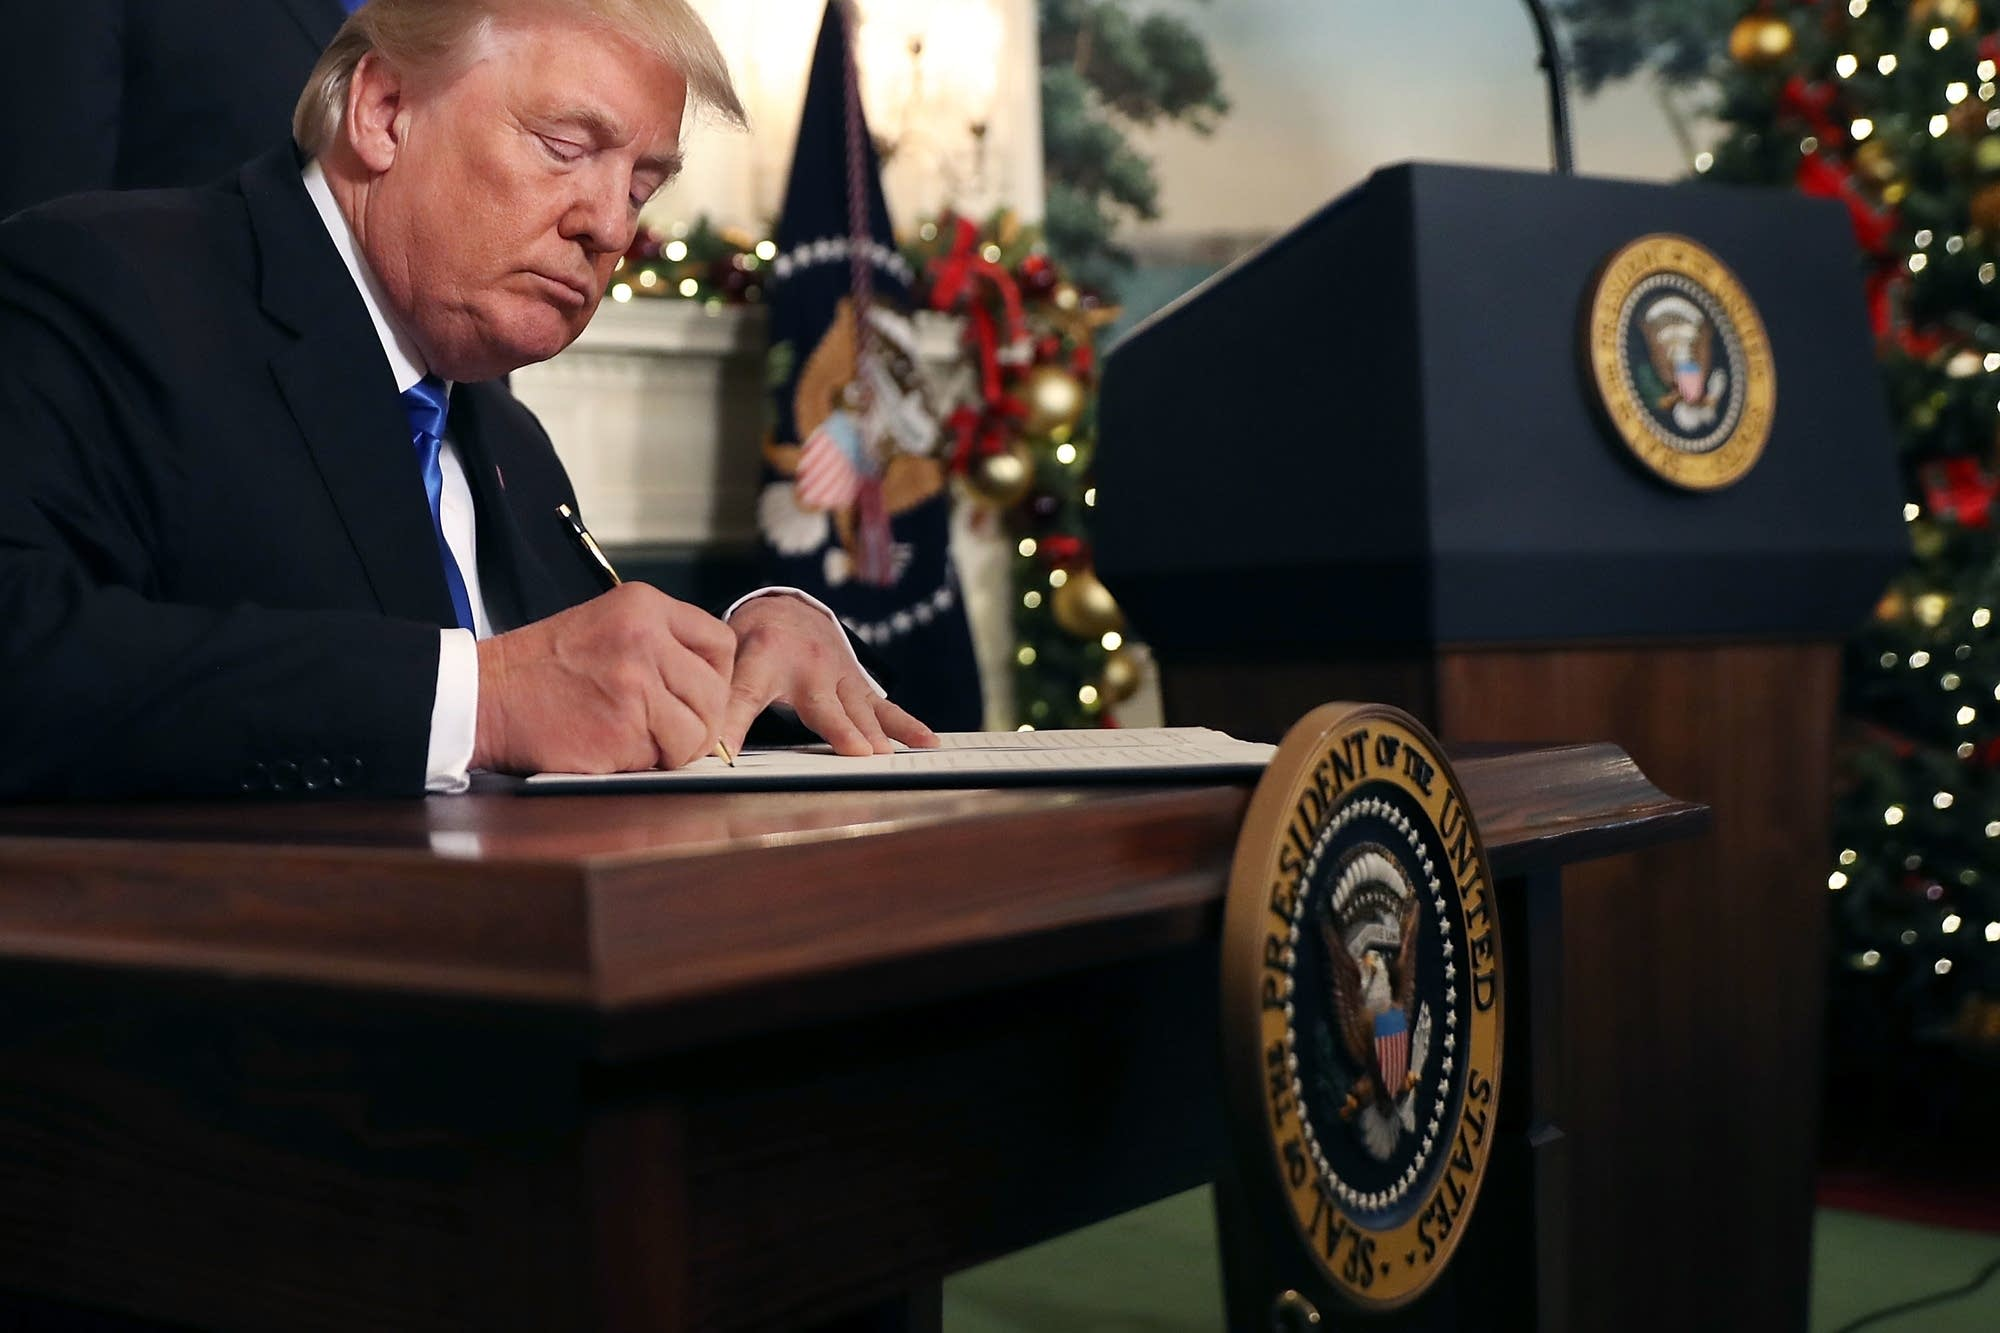 President Donald Trump signs a proclamation on Jerusalem.